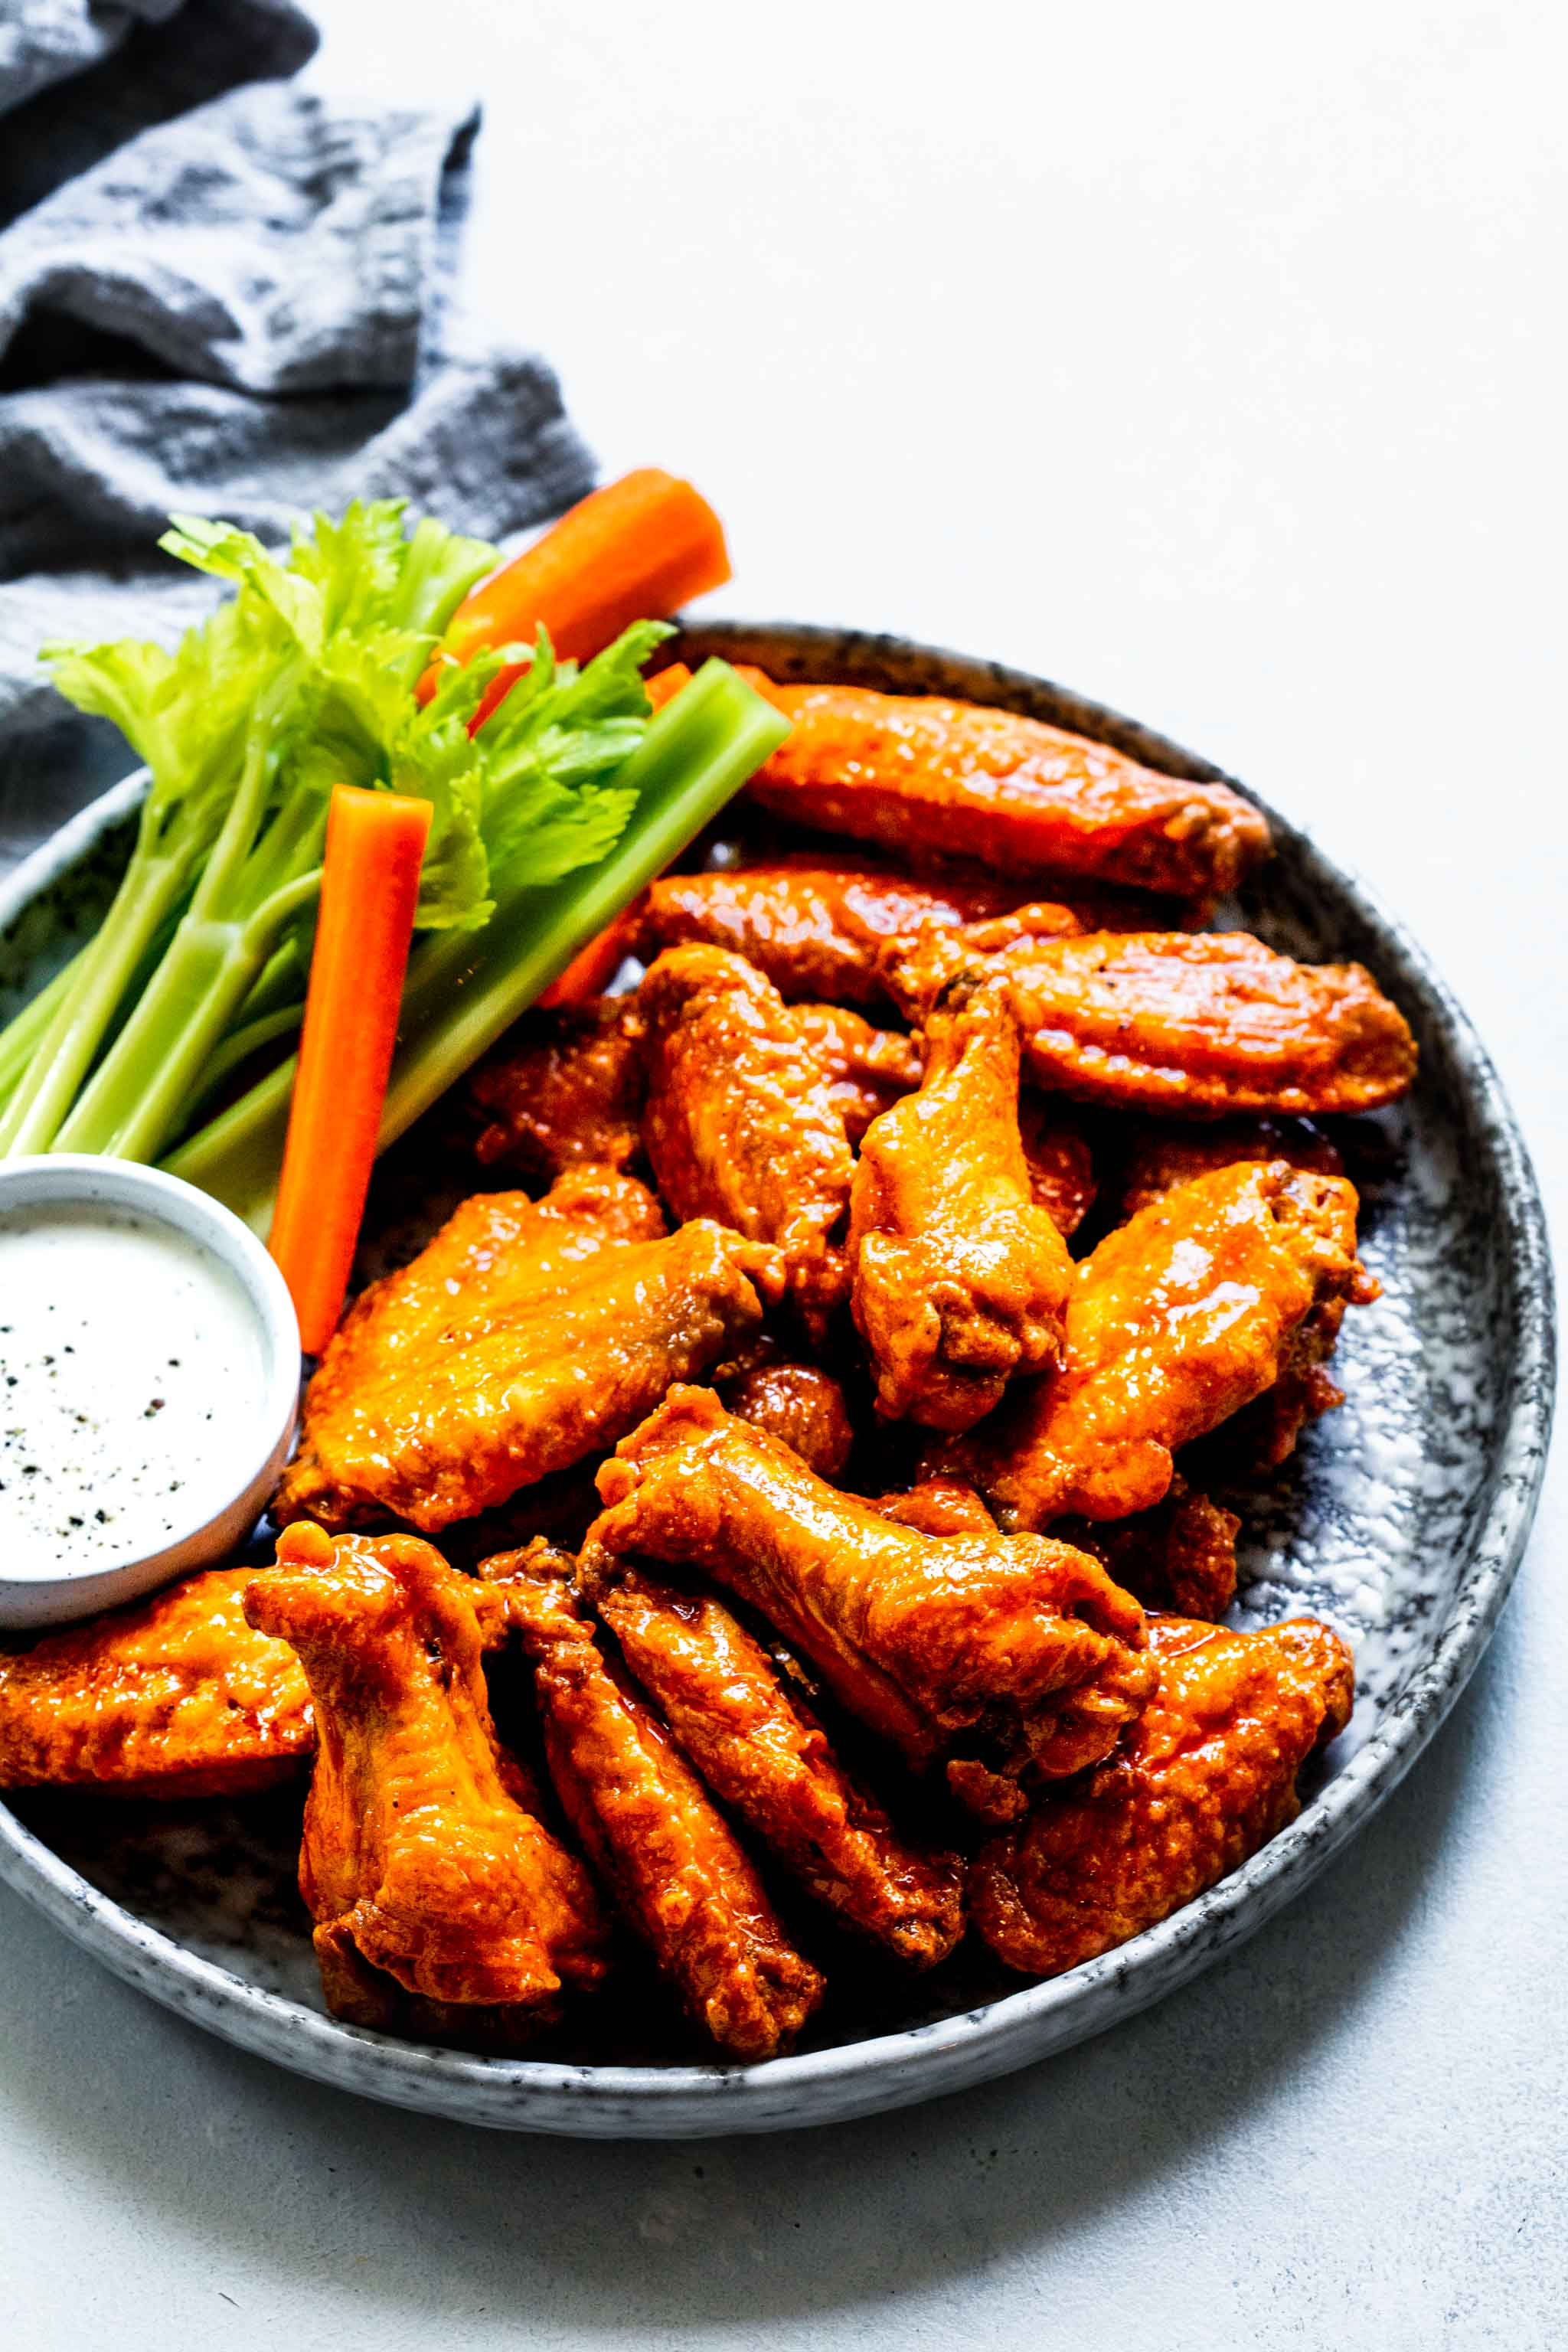 Baked buffalo wings coated in buffalo sauce on grey speckled plate next to blue cheese and celery sticks.